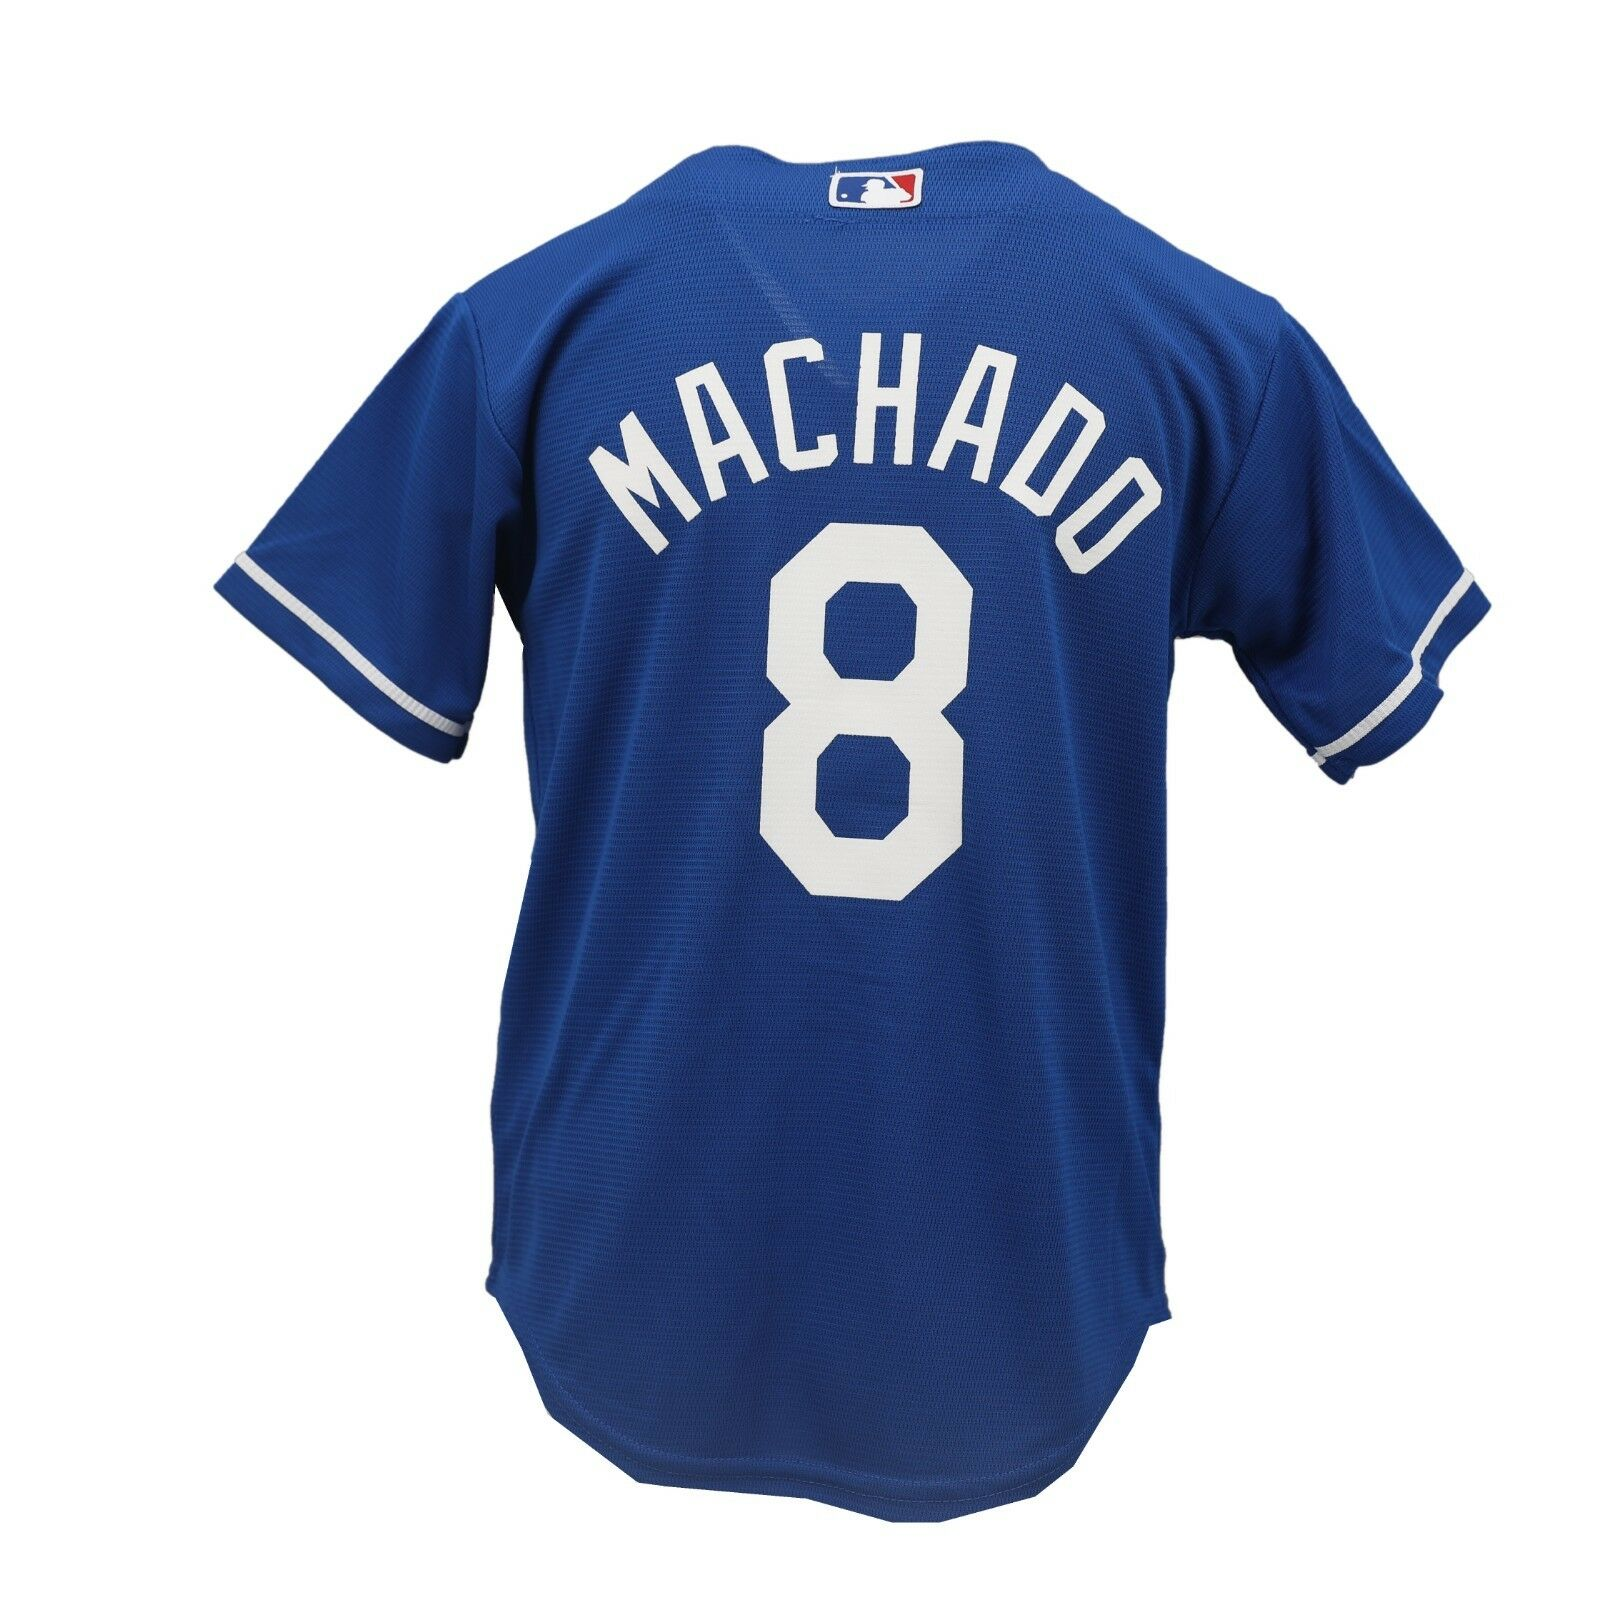 the latest a4745 6edb2 Details about Los Angeles Dodgers MLB Genuine Kids Youth Size Manny Machado  Jersey New Tags